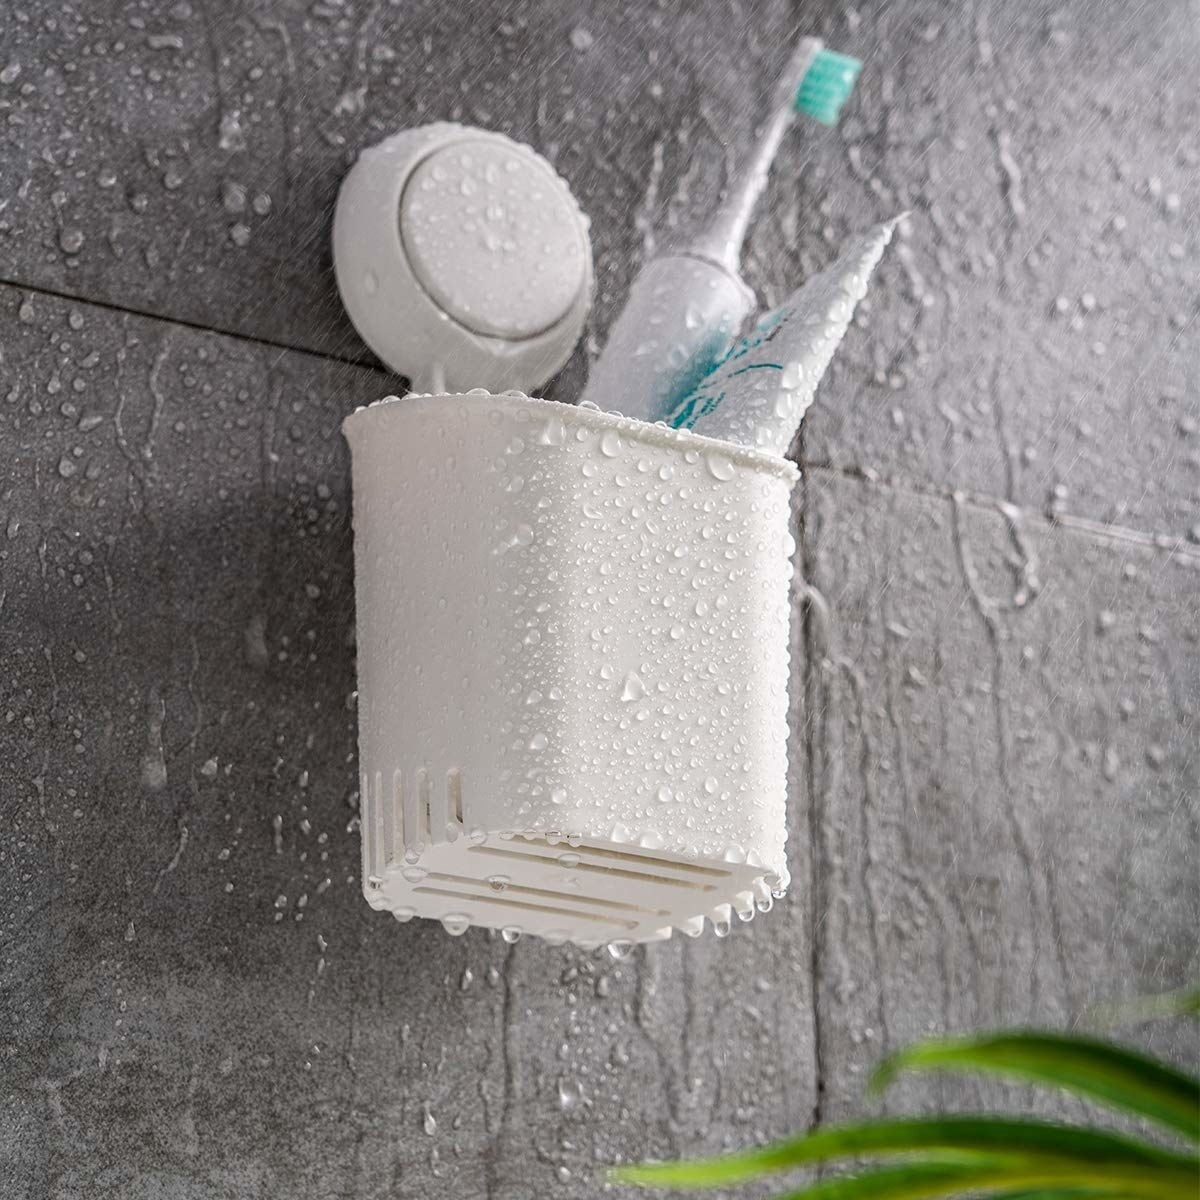 The caddy, wet from the shower, holding a toothbrush and toothpaste and suctioned to a wall in the shower